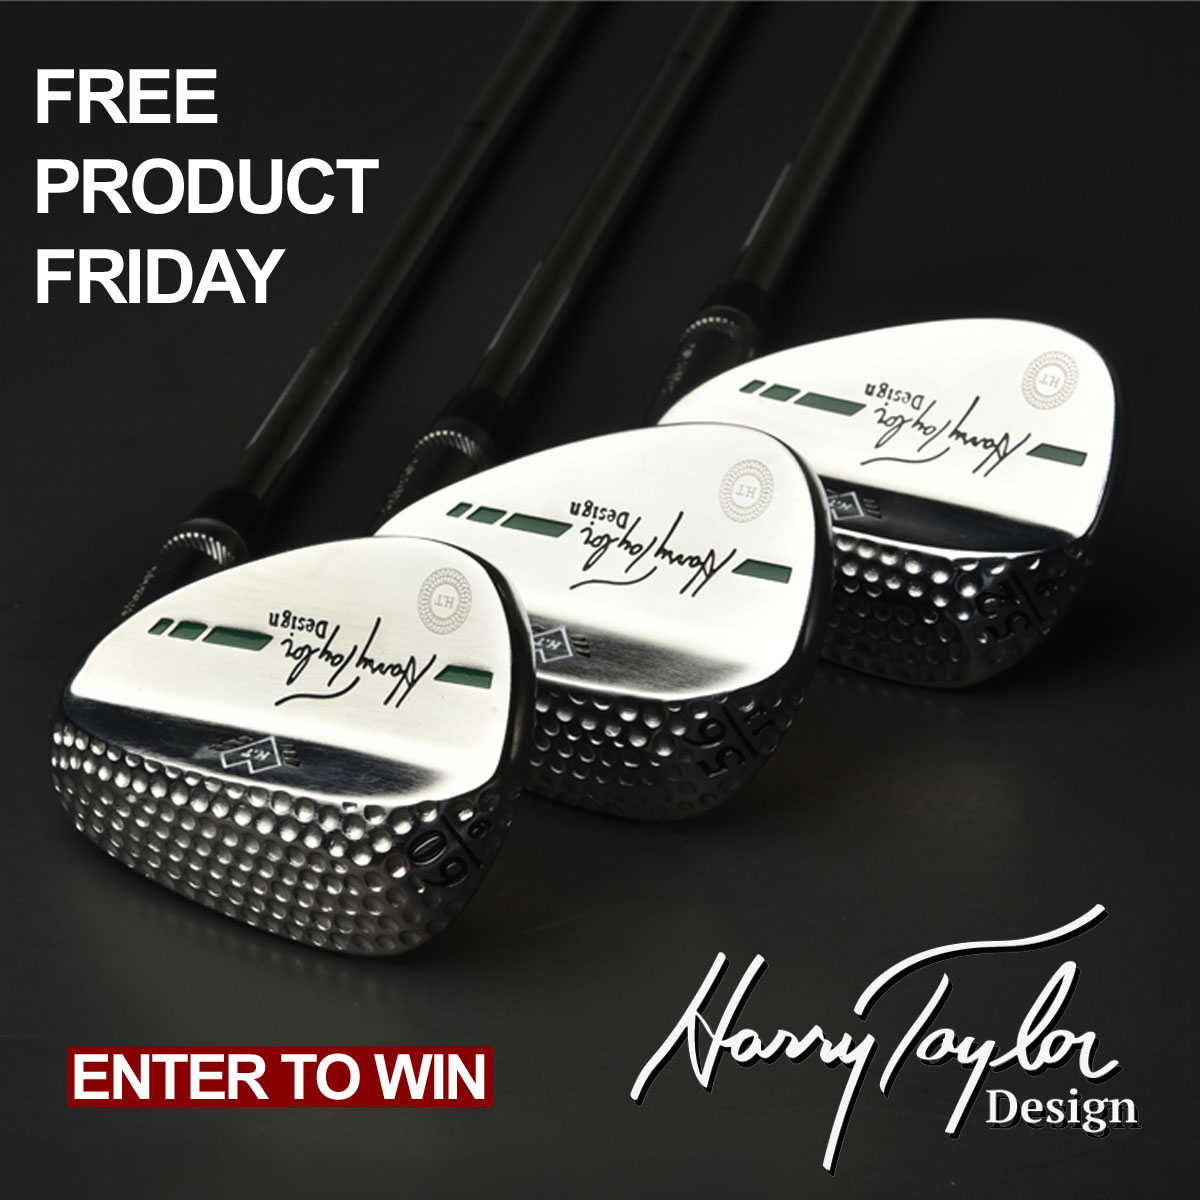 Enter today for a chance to win three (3) wedges from Harry Taylor Golf for our Free Product Friday giveaway.  Good Luck.  #Win #Golf #Wedges #Free #Product #Friday #MoreGolfToday #ClickitGolf  ENTER HERE:  https://t.co/H4FxSrj18p #Win #Golf #Wedges #MoreGolfToday #ClickitGolf https://t.co/RlupLst3a7